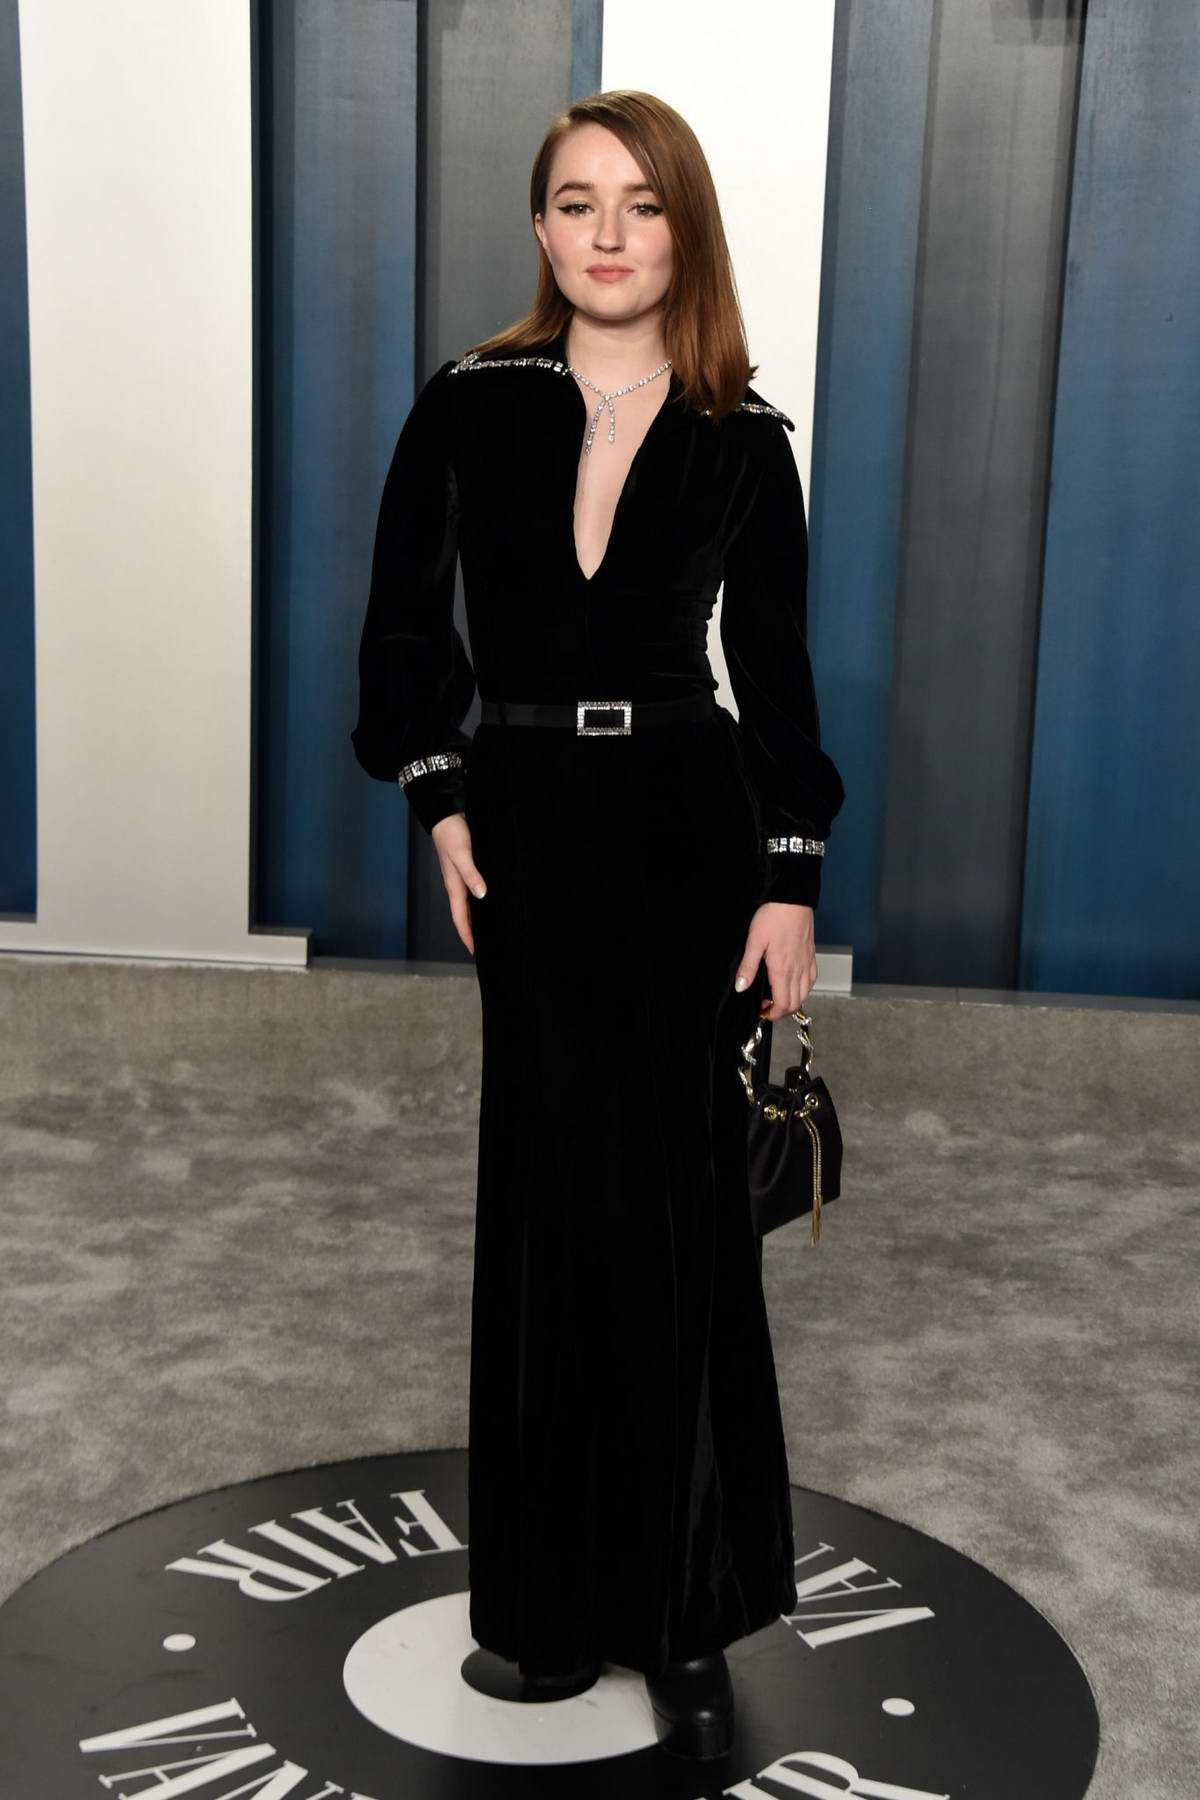 Kaitlyn Dever attends the 2020 Vanity Fair Oscar Party at Wallis Annenberg Center for the Performing Arts in Los Angeles